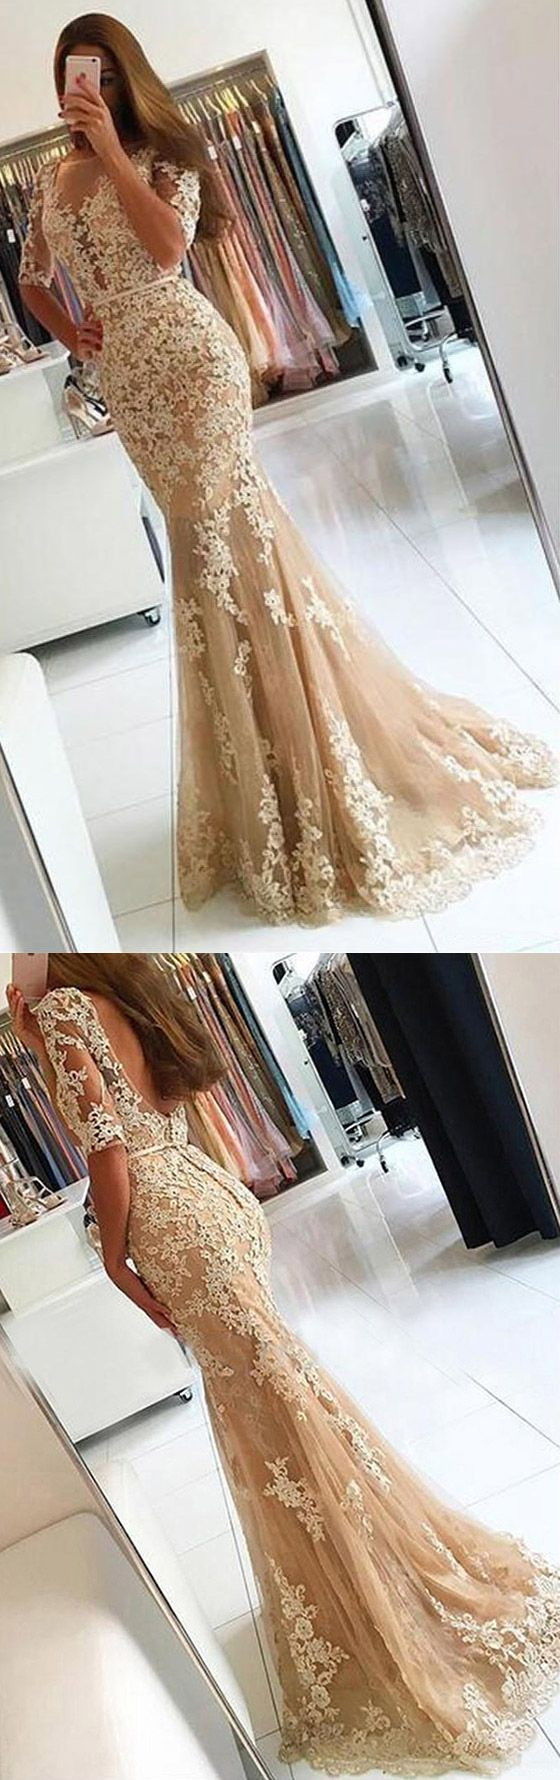 Mermaid Prom Dresses 2018, Lace Party Dresses Backless, Elegant Evening Dresses 1/2 Sleeve, Long Formal Dresses Modest